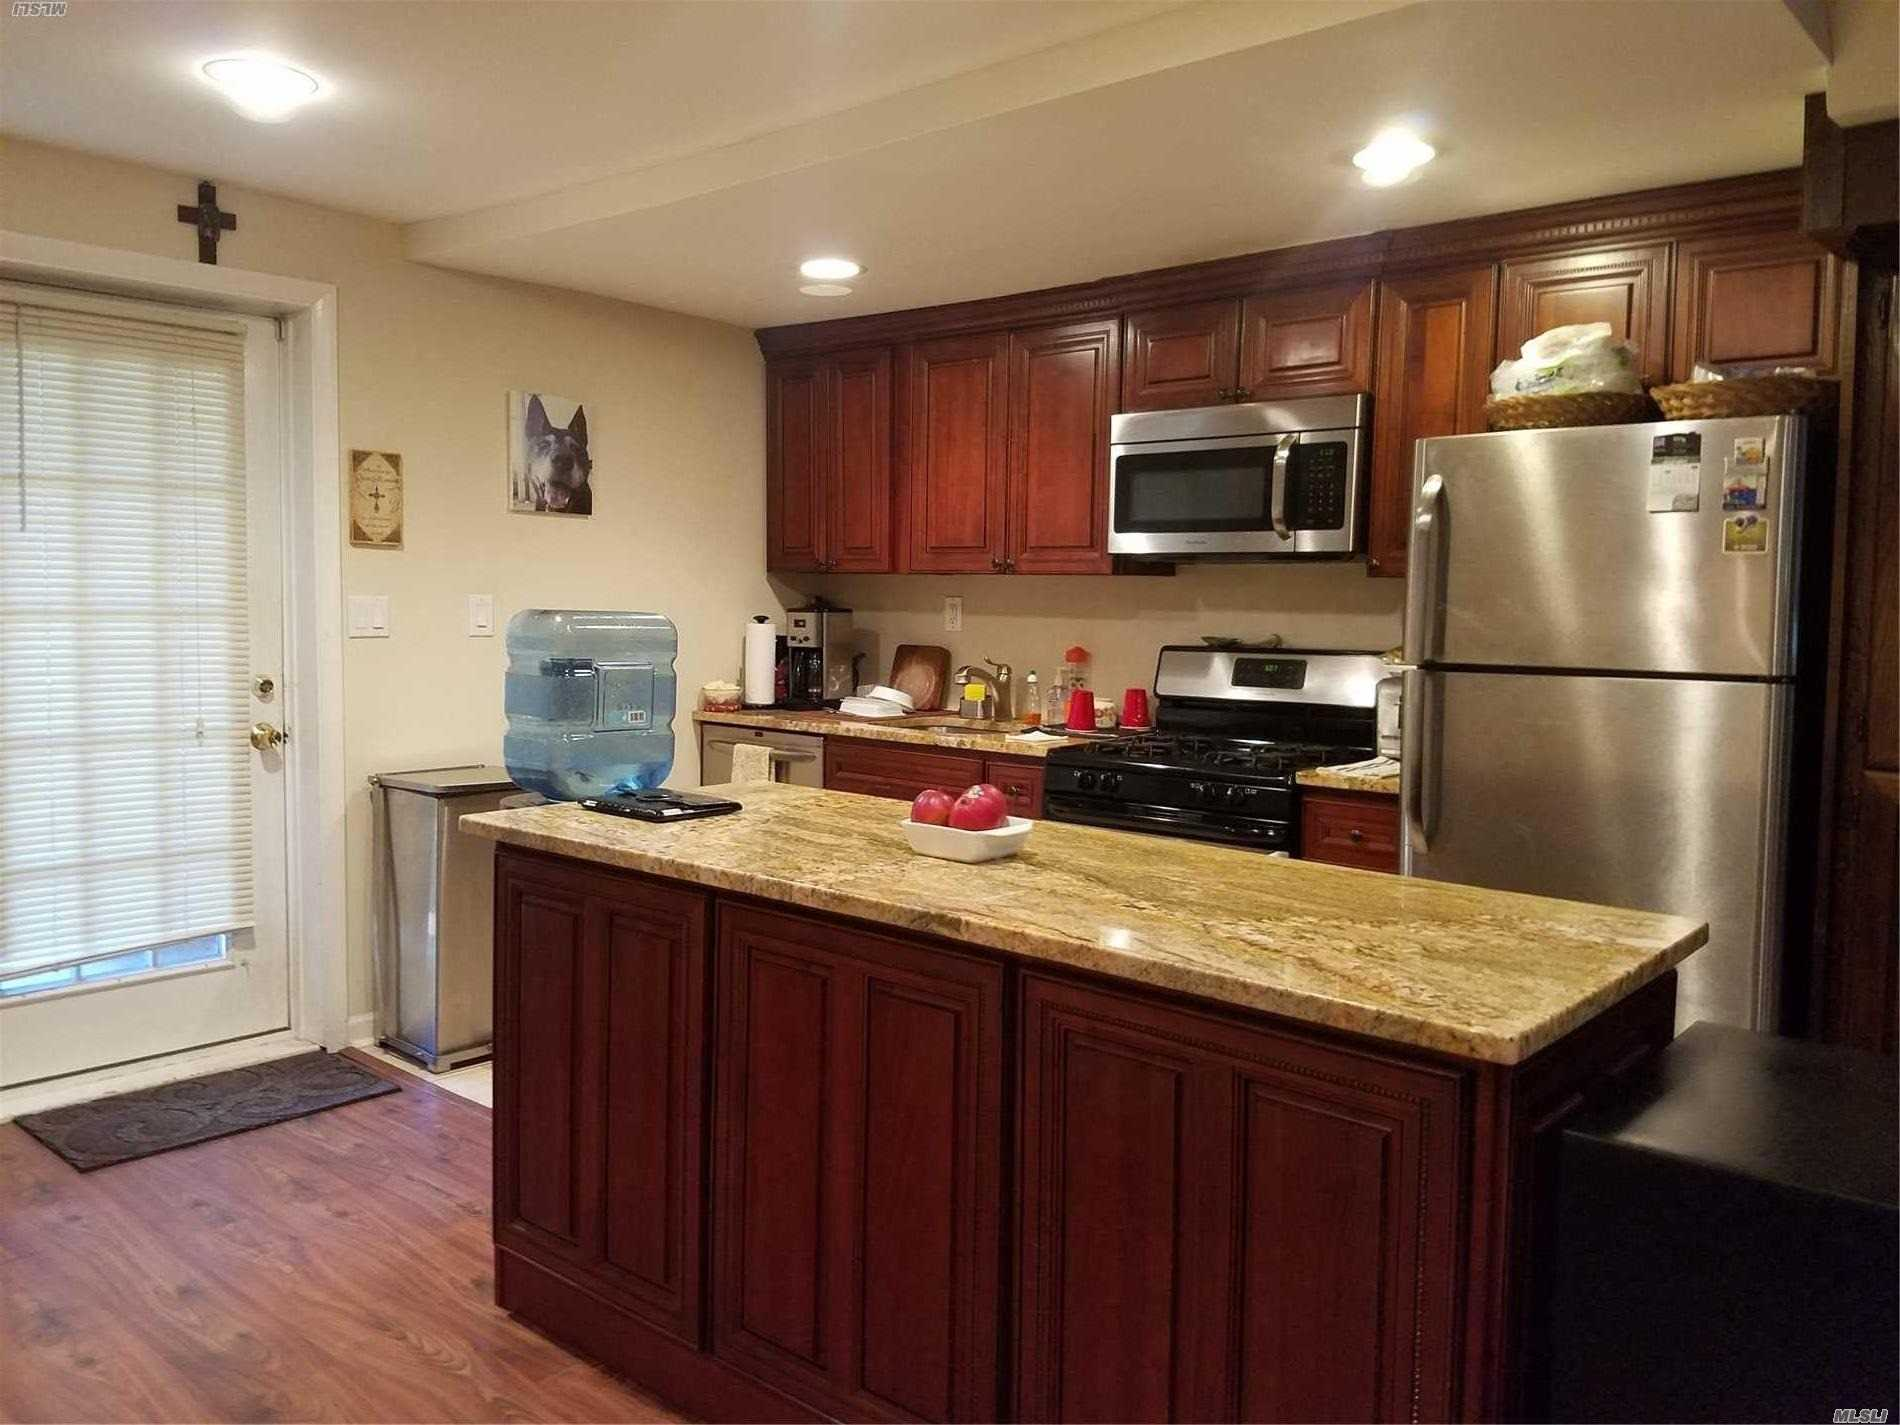 Spacious 2 Bed/2 Bath Cottage W Private Gated Courtyard & Entry. 1st Fl: Kitchen, Dining & Living Rooms With Lam Floors. 2nd Fl: Big Master Br & Sm 2nd Br, 2 Full Baths. Tenant Resp For Cooking Gas, Electric, And 1st Fl Heat/Ac. Landlord Resp For 2nd Fl Heat. Lots Of Closets. No W/D. 2 Cars Parking Overnight. Tenant Must Have Excellent Credit 700+ And Excellent Verifiable Income. References A Must. One Cat With Landlord's Ok Plus $100 Pet Cleaning Fee No Dogs!